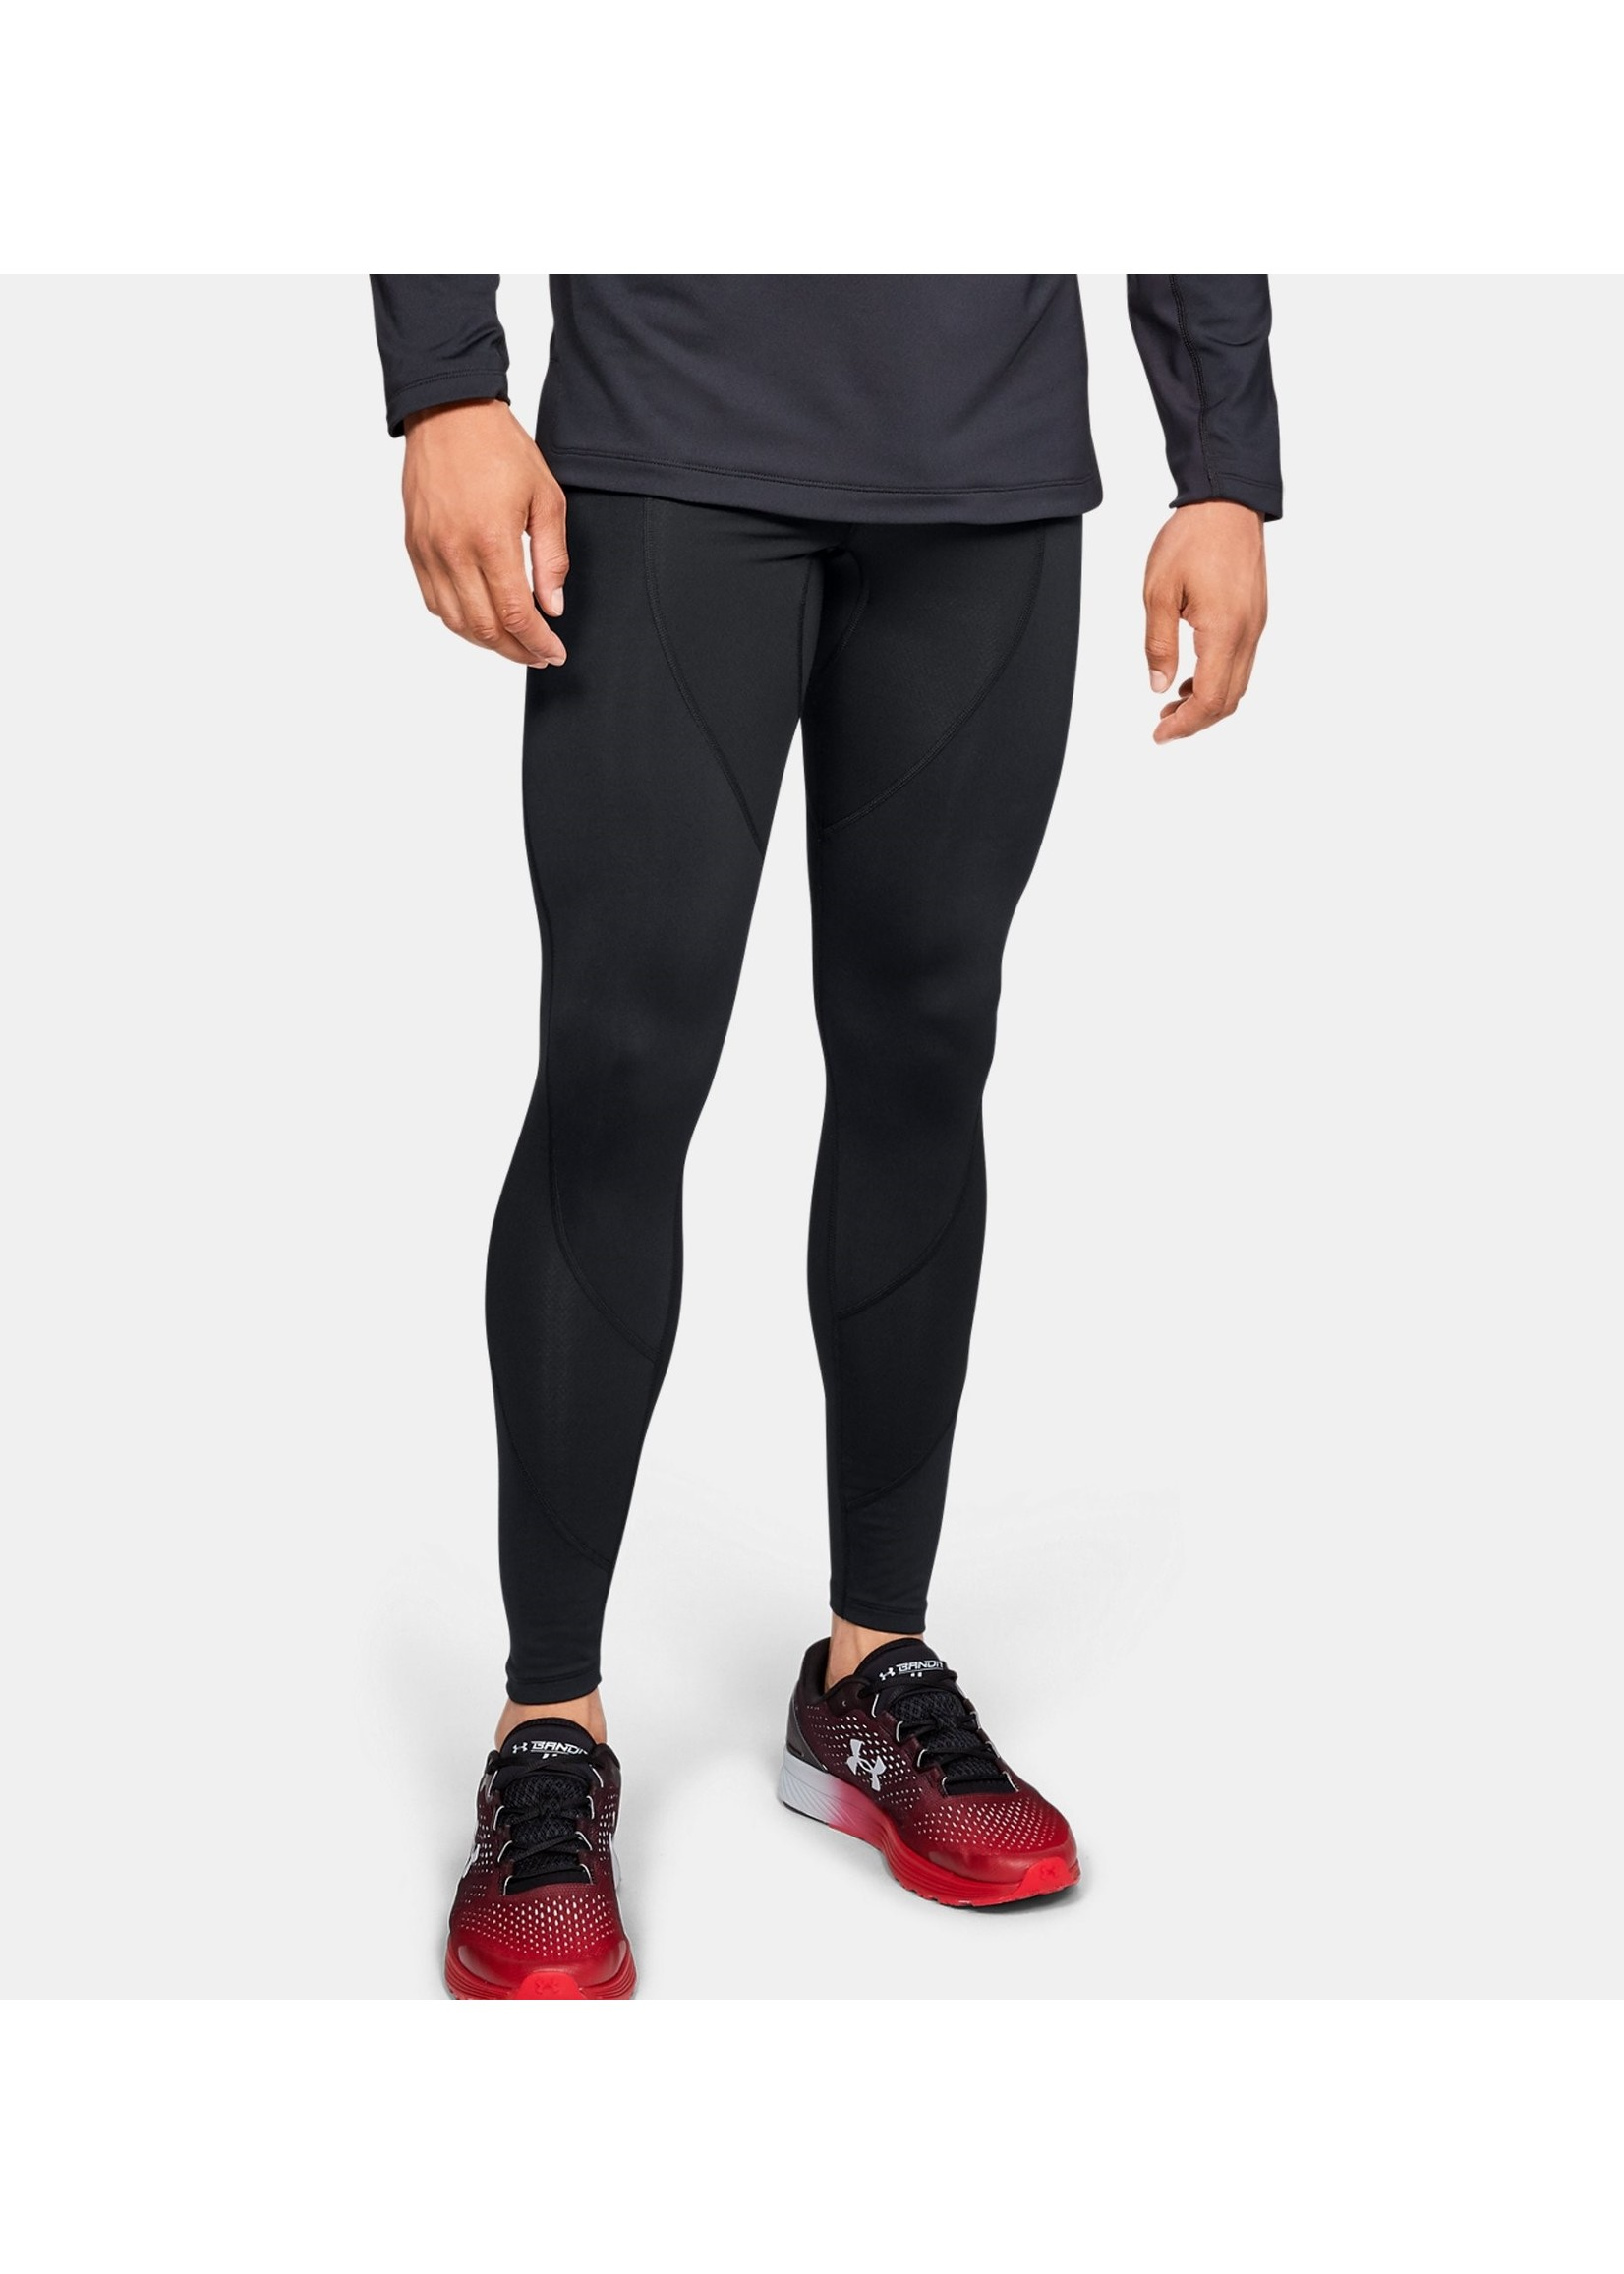 Under Armour COLDGEAR REACTOR RUN TIGHT 2 1317475